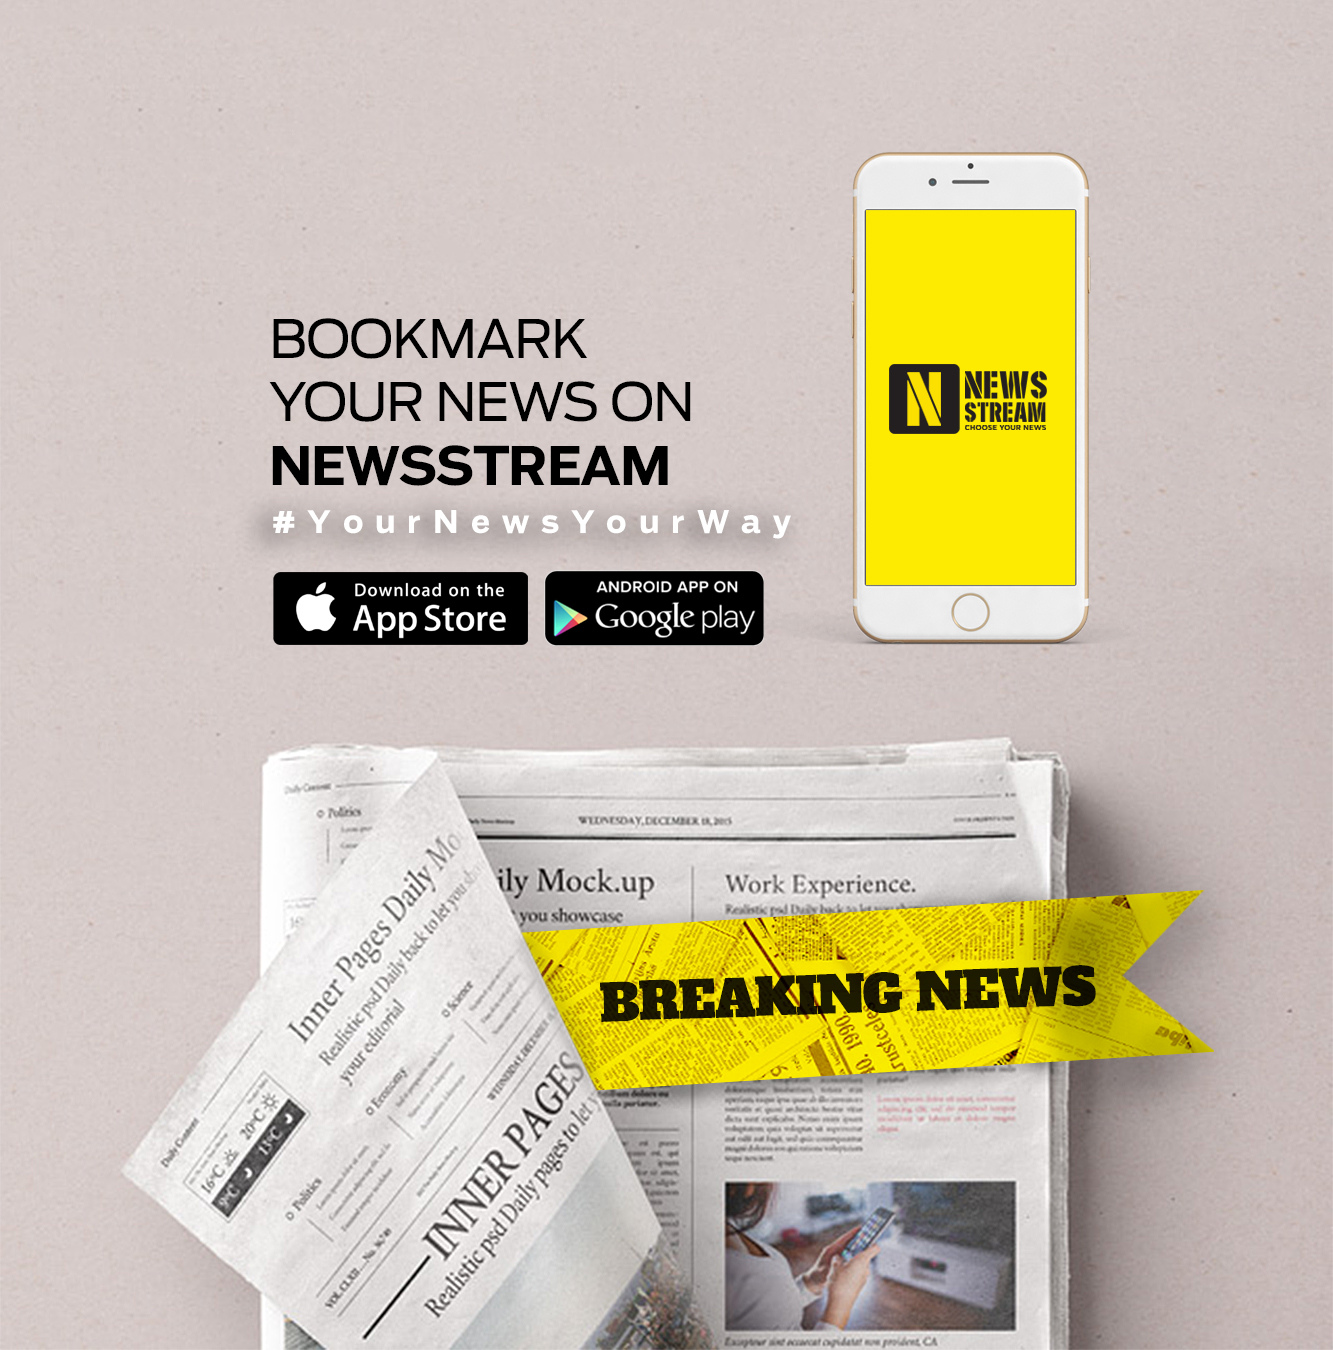 NewsStream - App